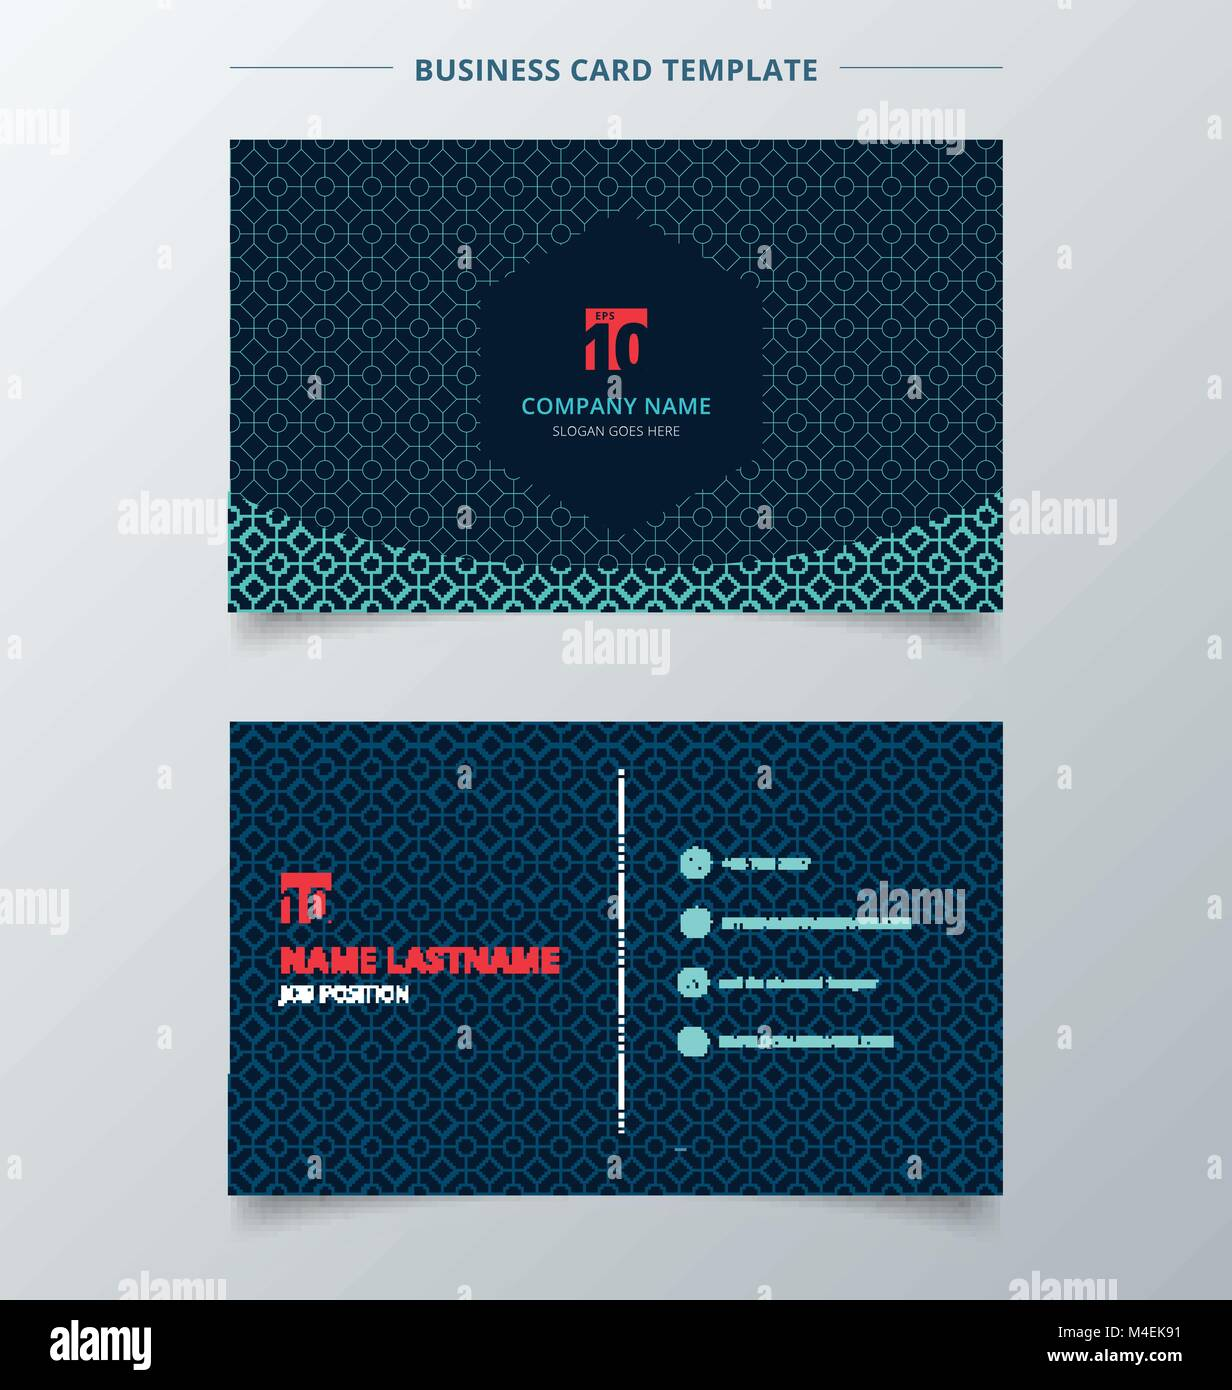 Creative business card and name card template dark blue color modern ...